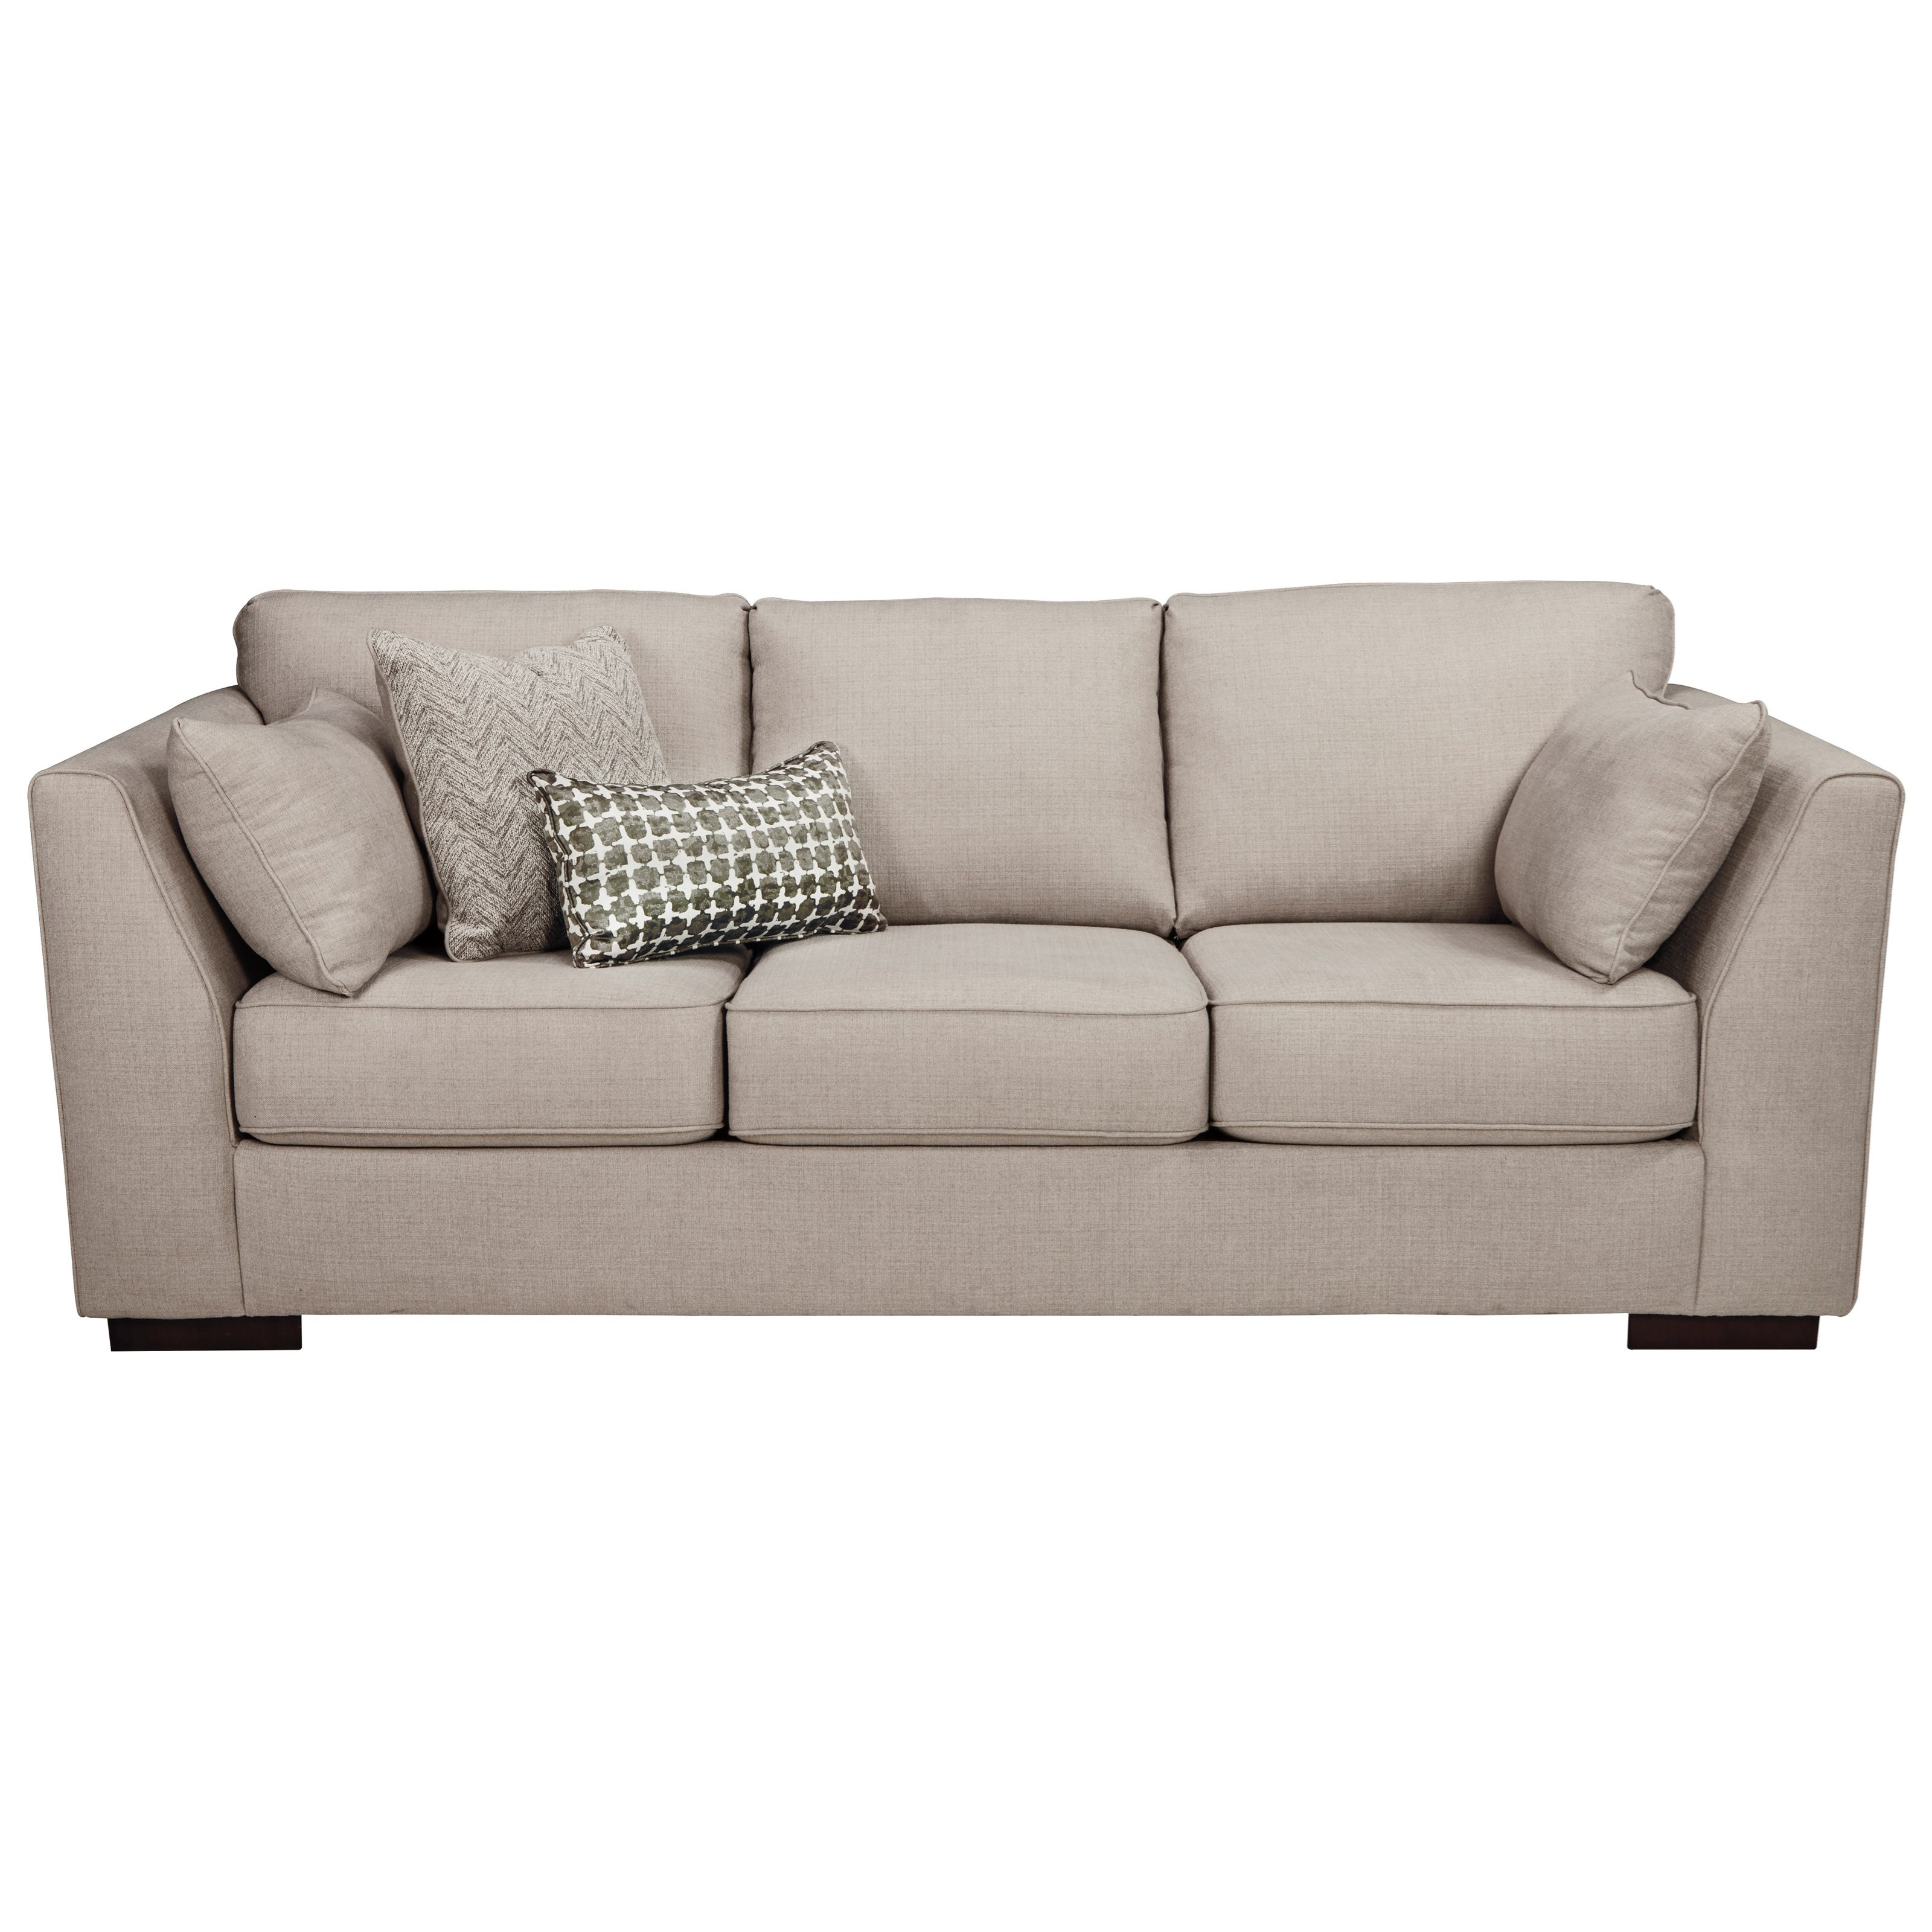 Sofa With Shelter Arms And Reversible Coil Seat Cushions